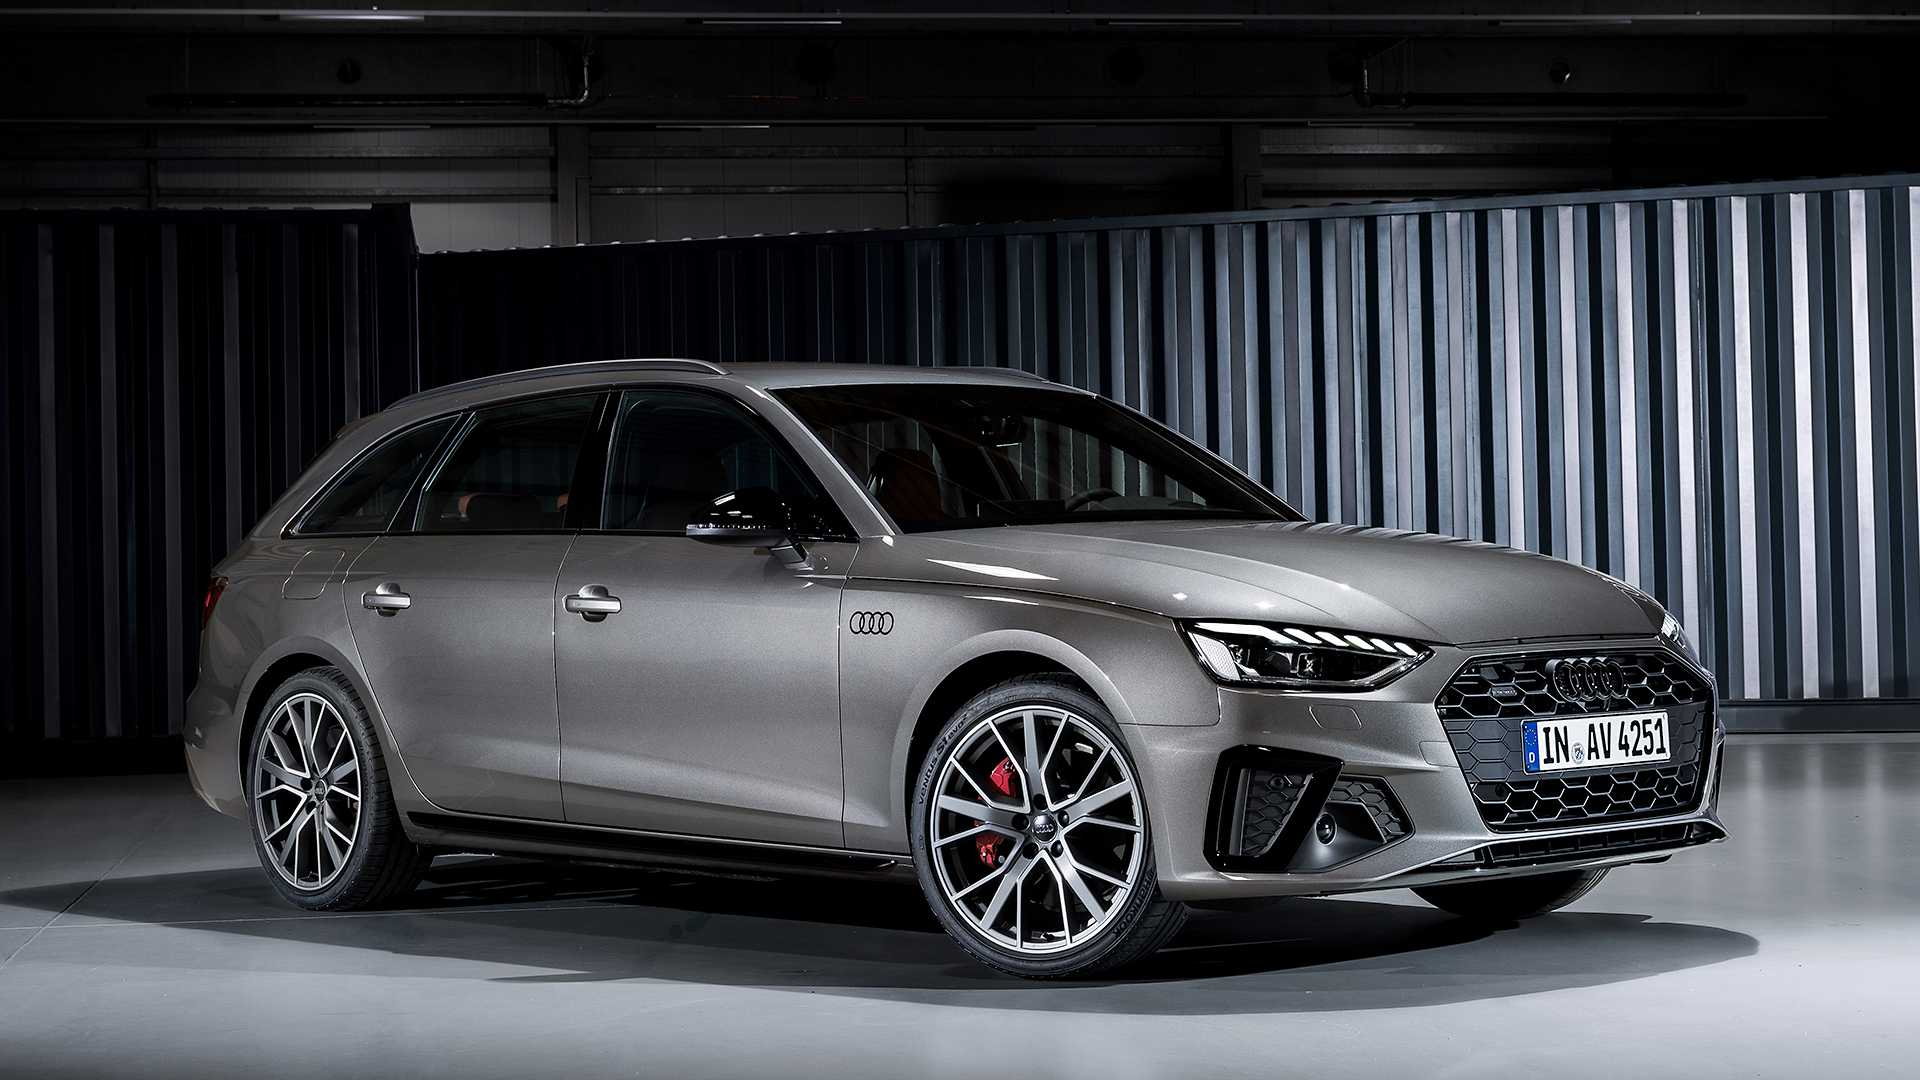 54 All New 2019 Audi A4 Images